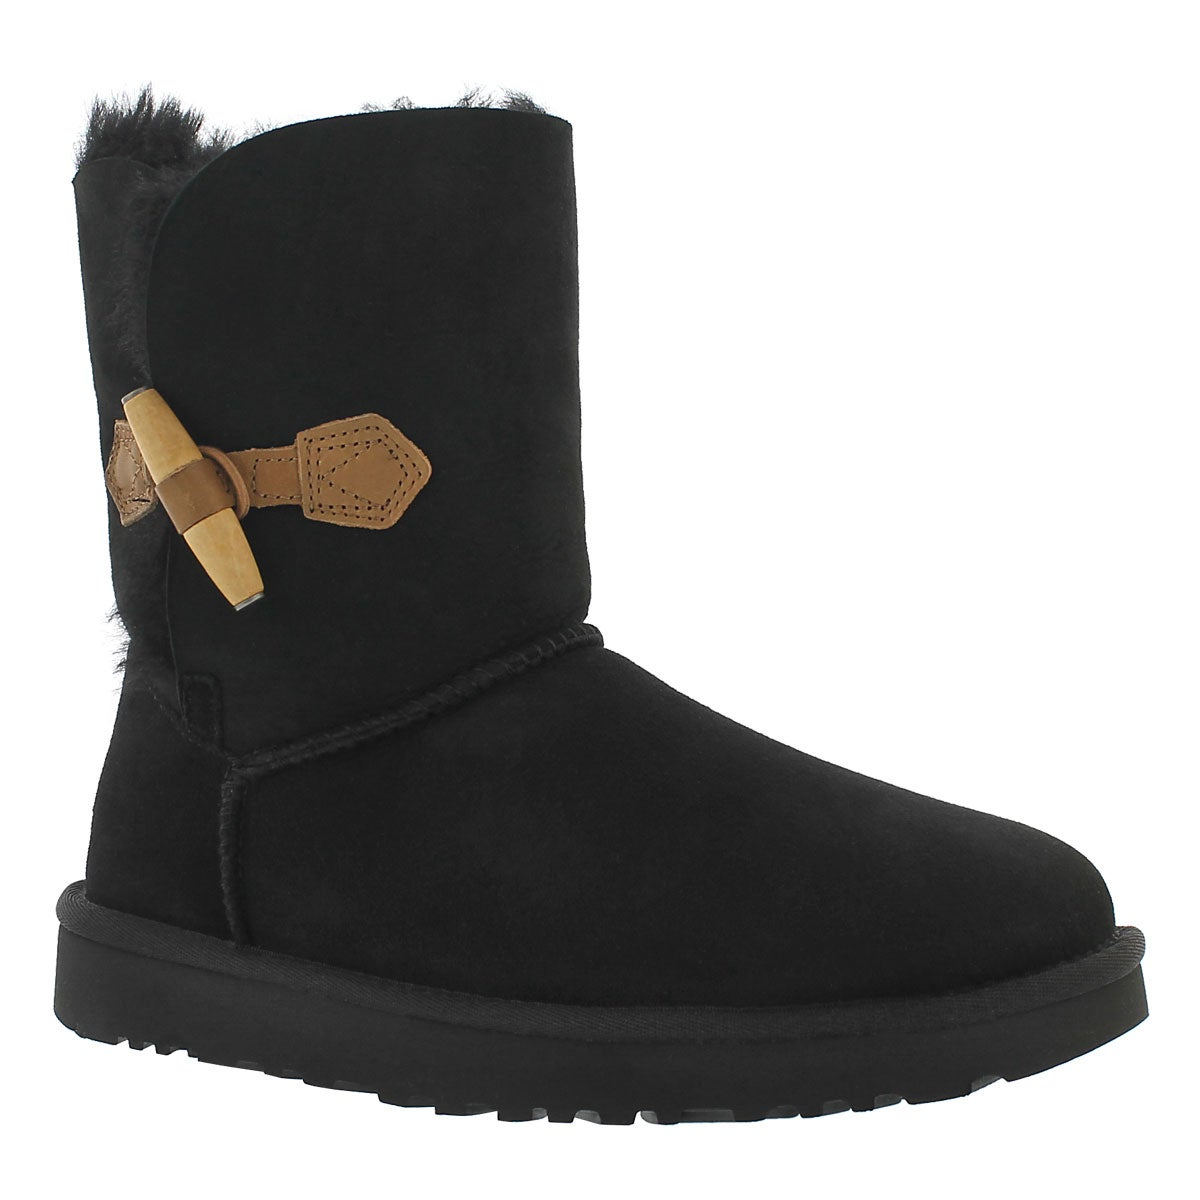 Women's KEELY black sheepskin toggle boots